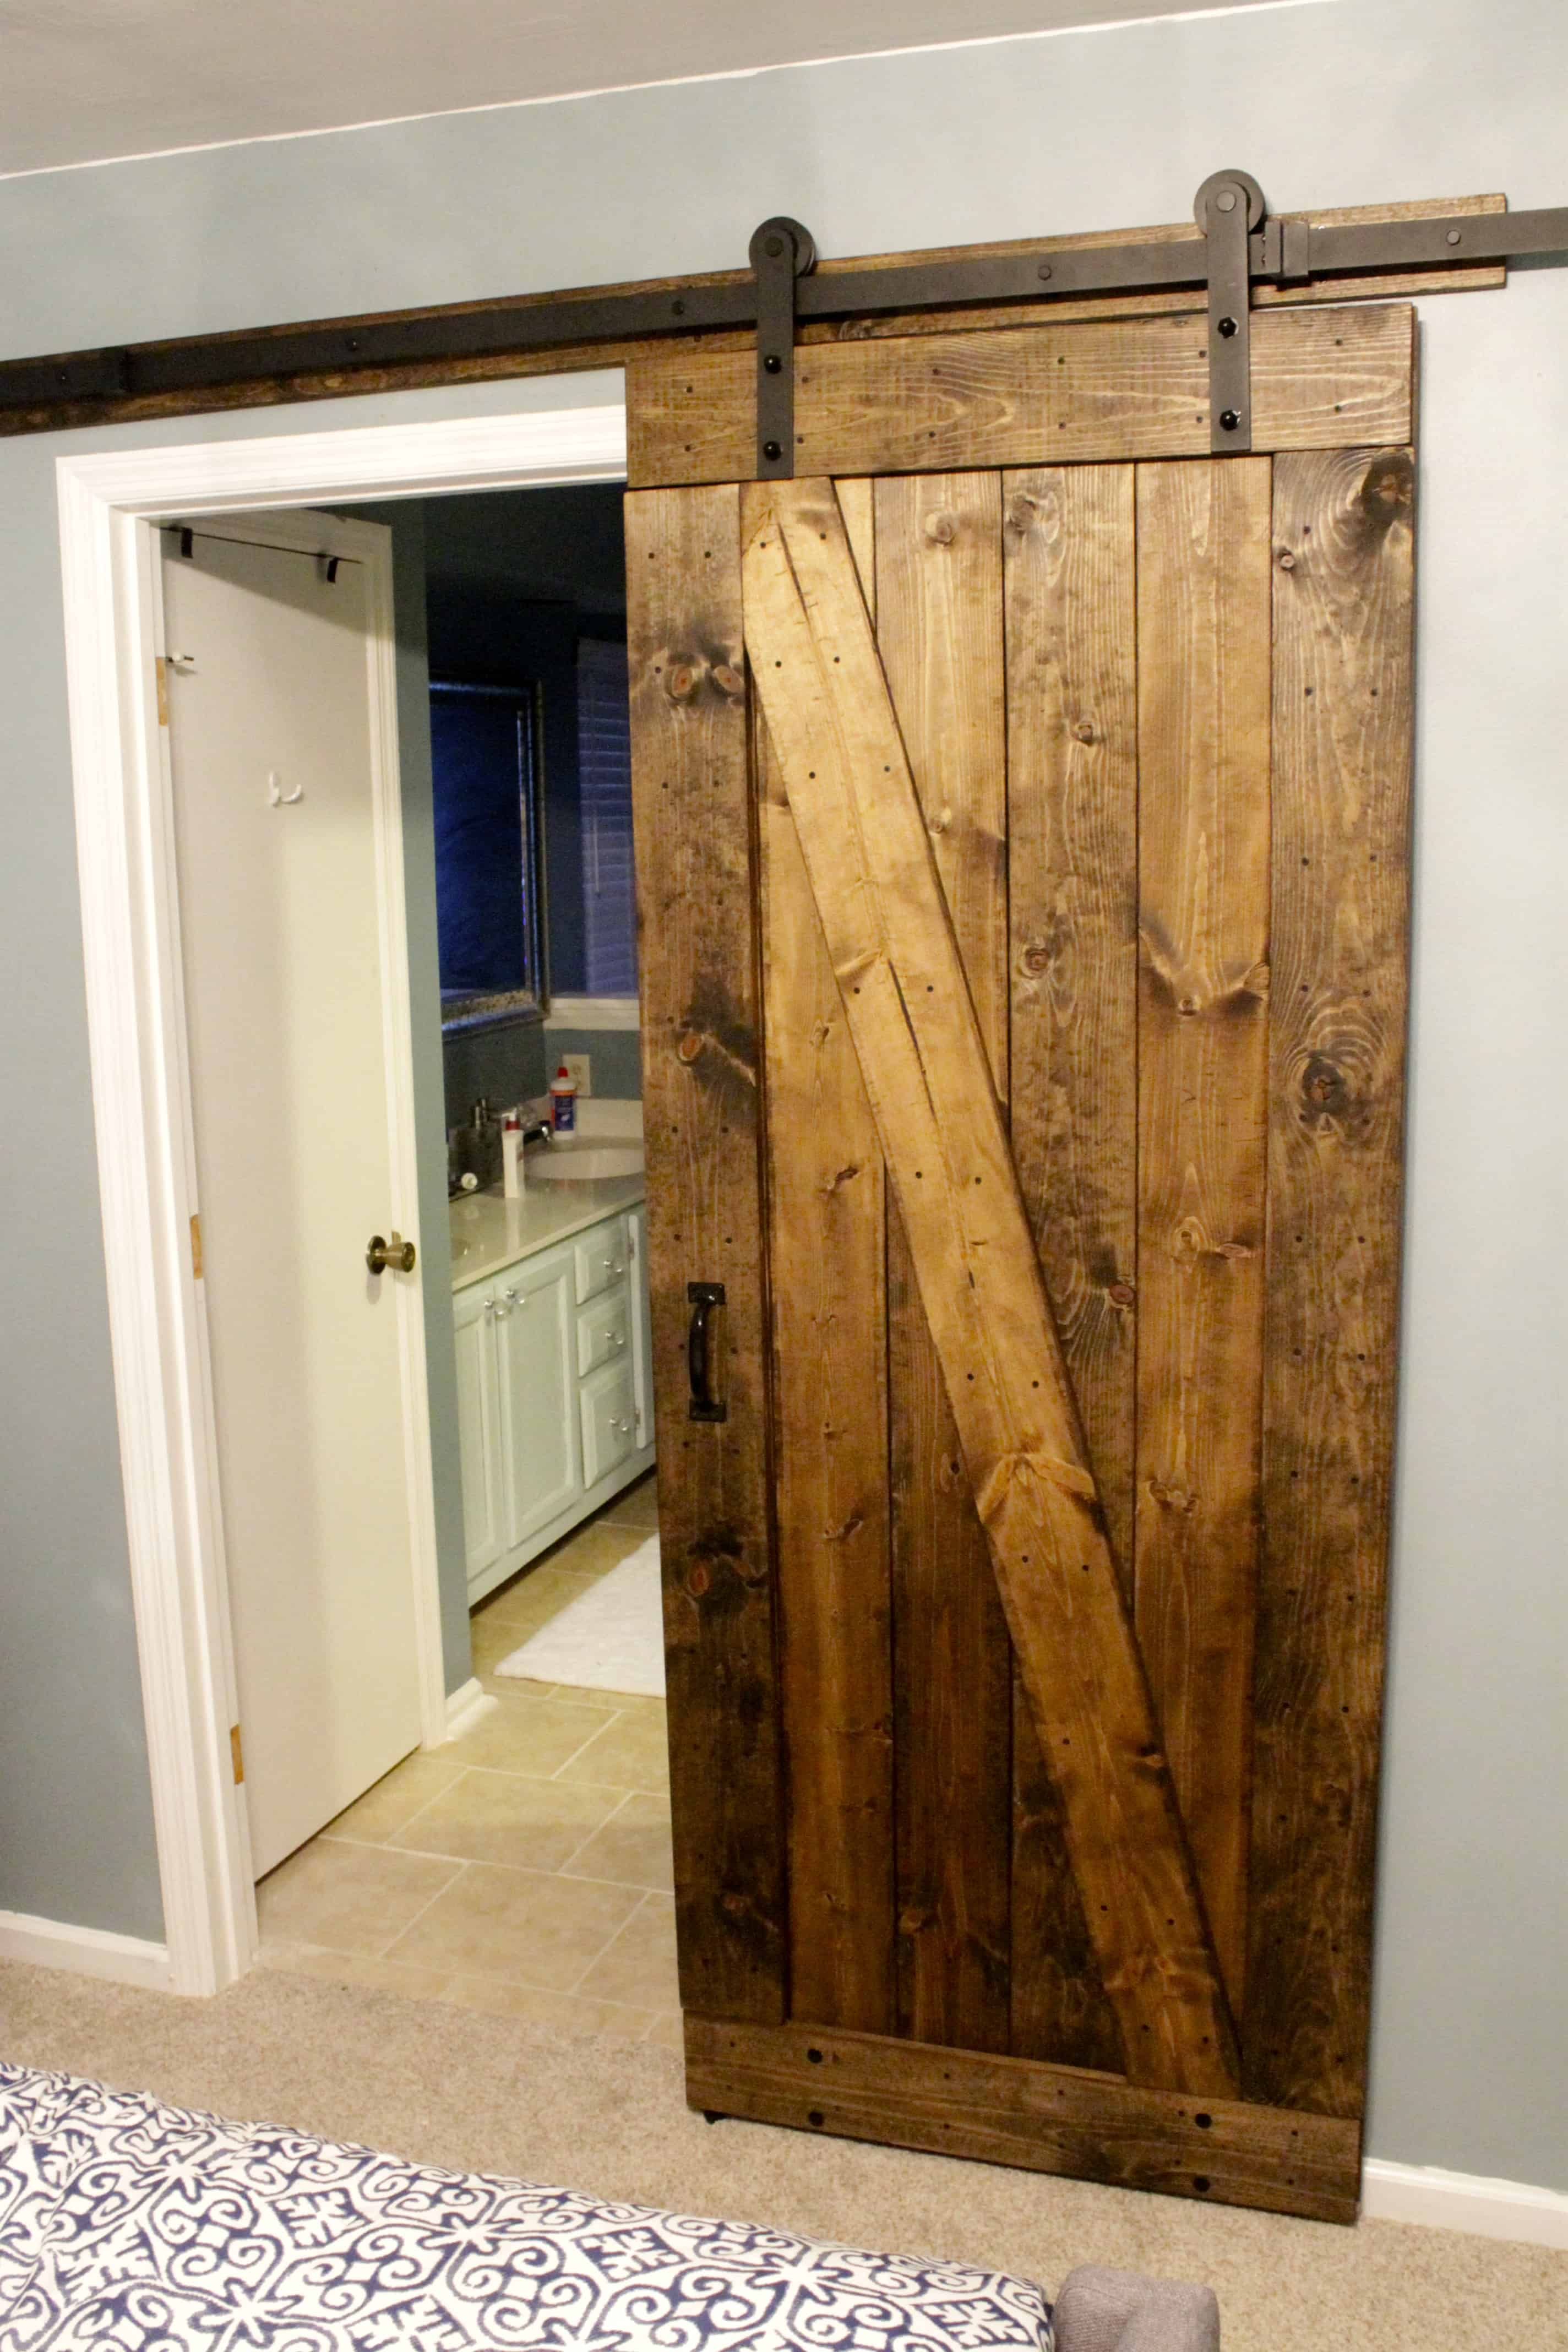 How To Mount A Barn Door Using Tc Bunny Hardware From